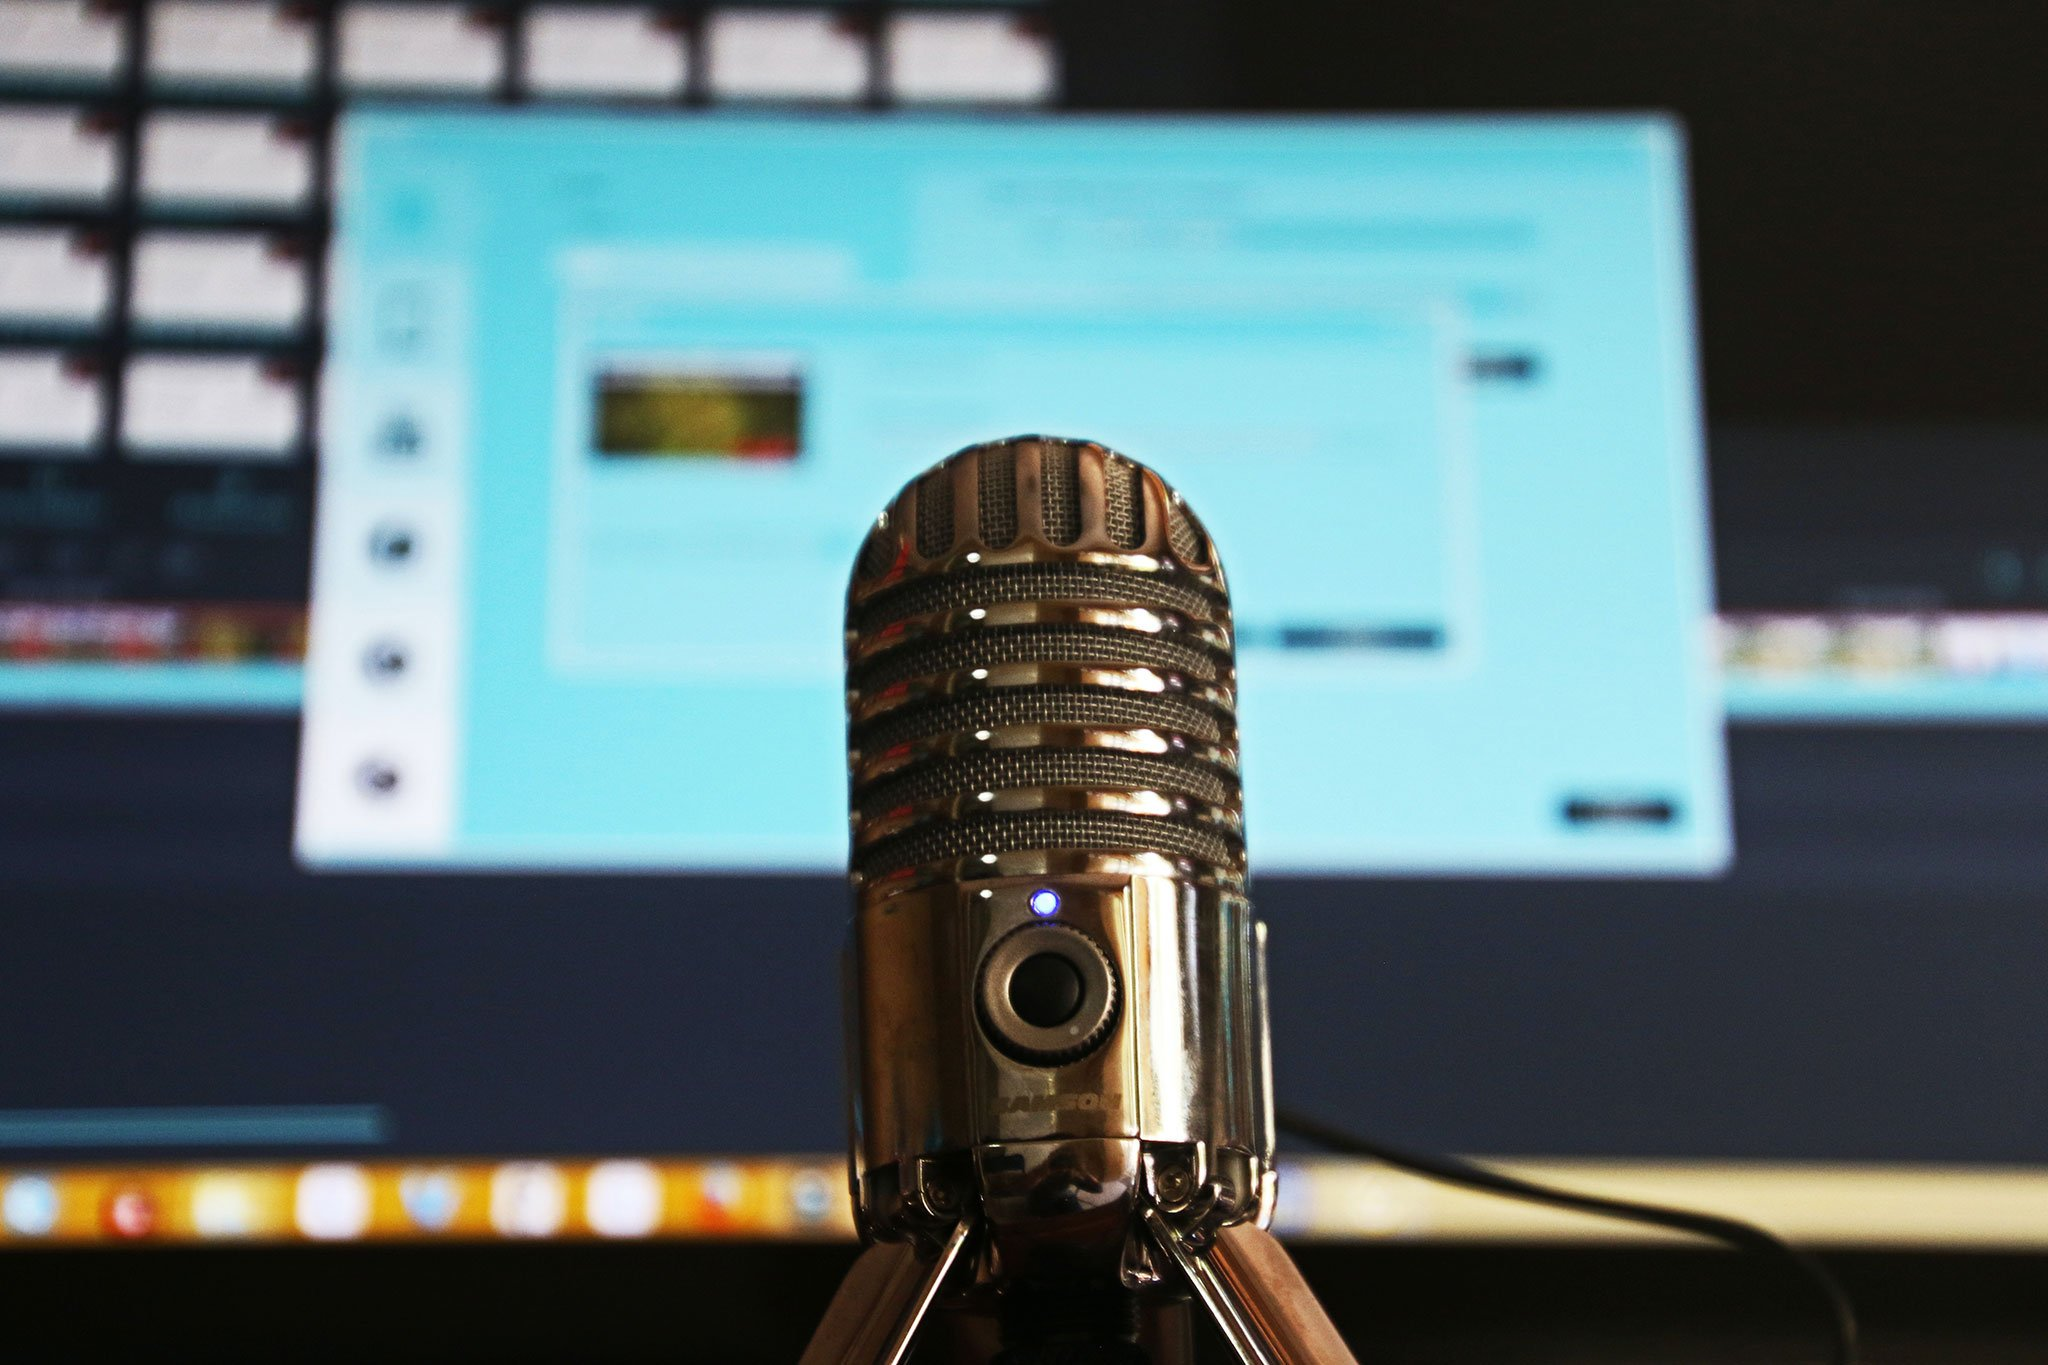 Image of podcast microphone uploaded to kalika.com